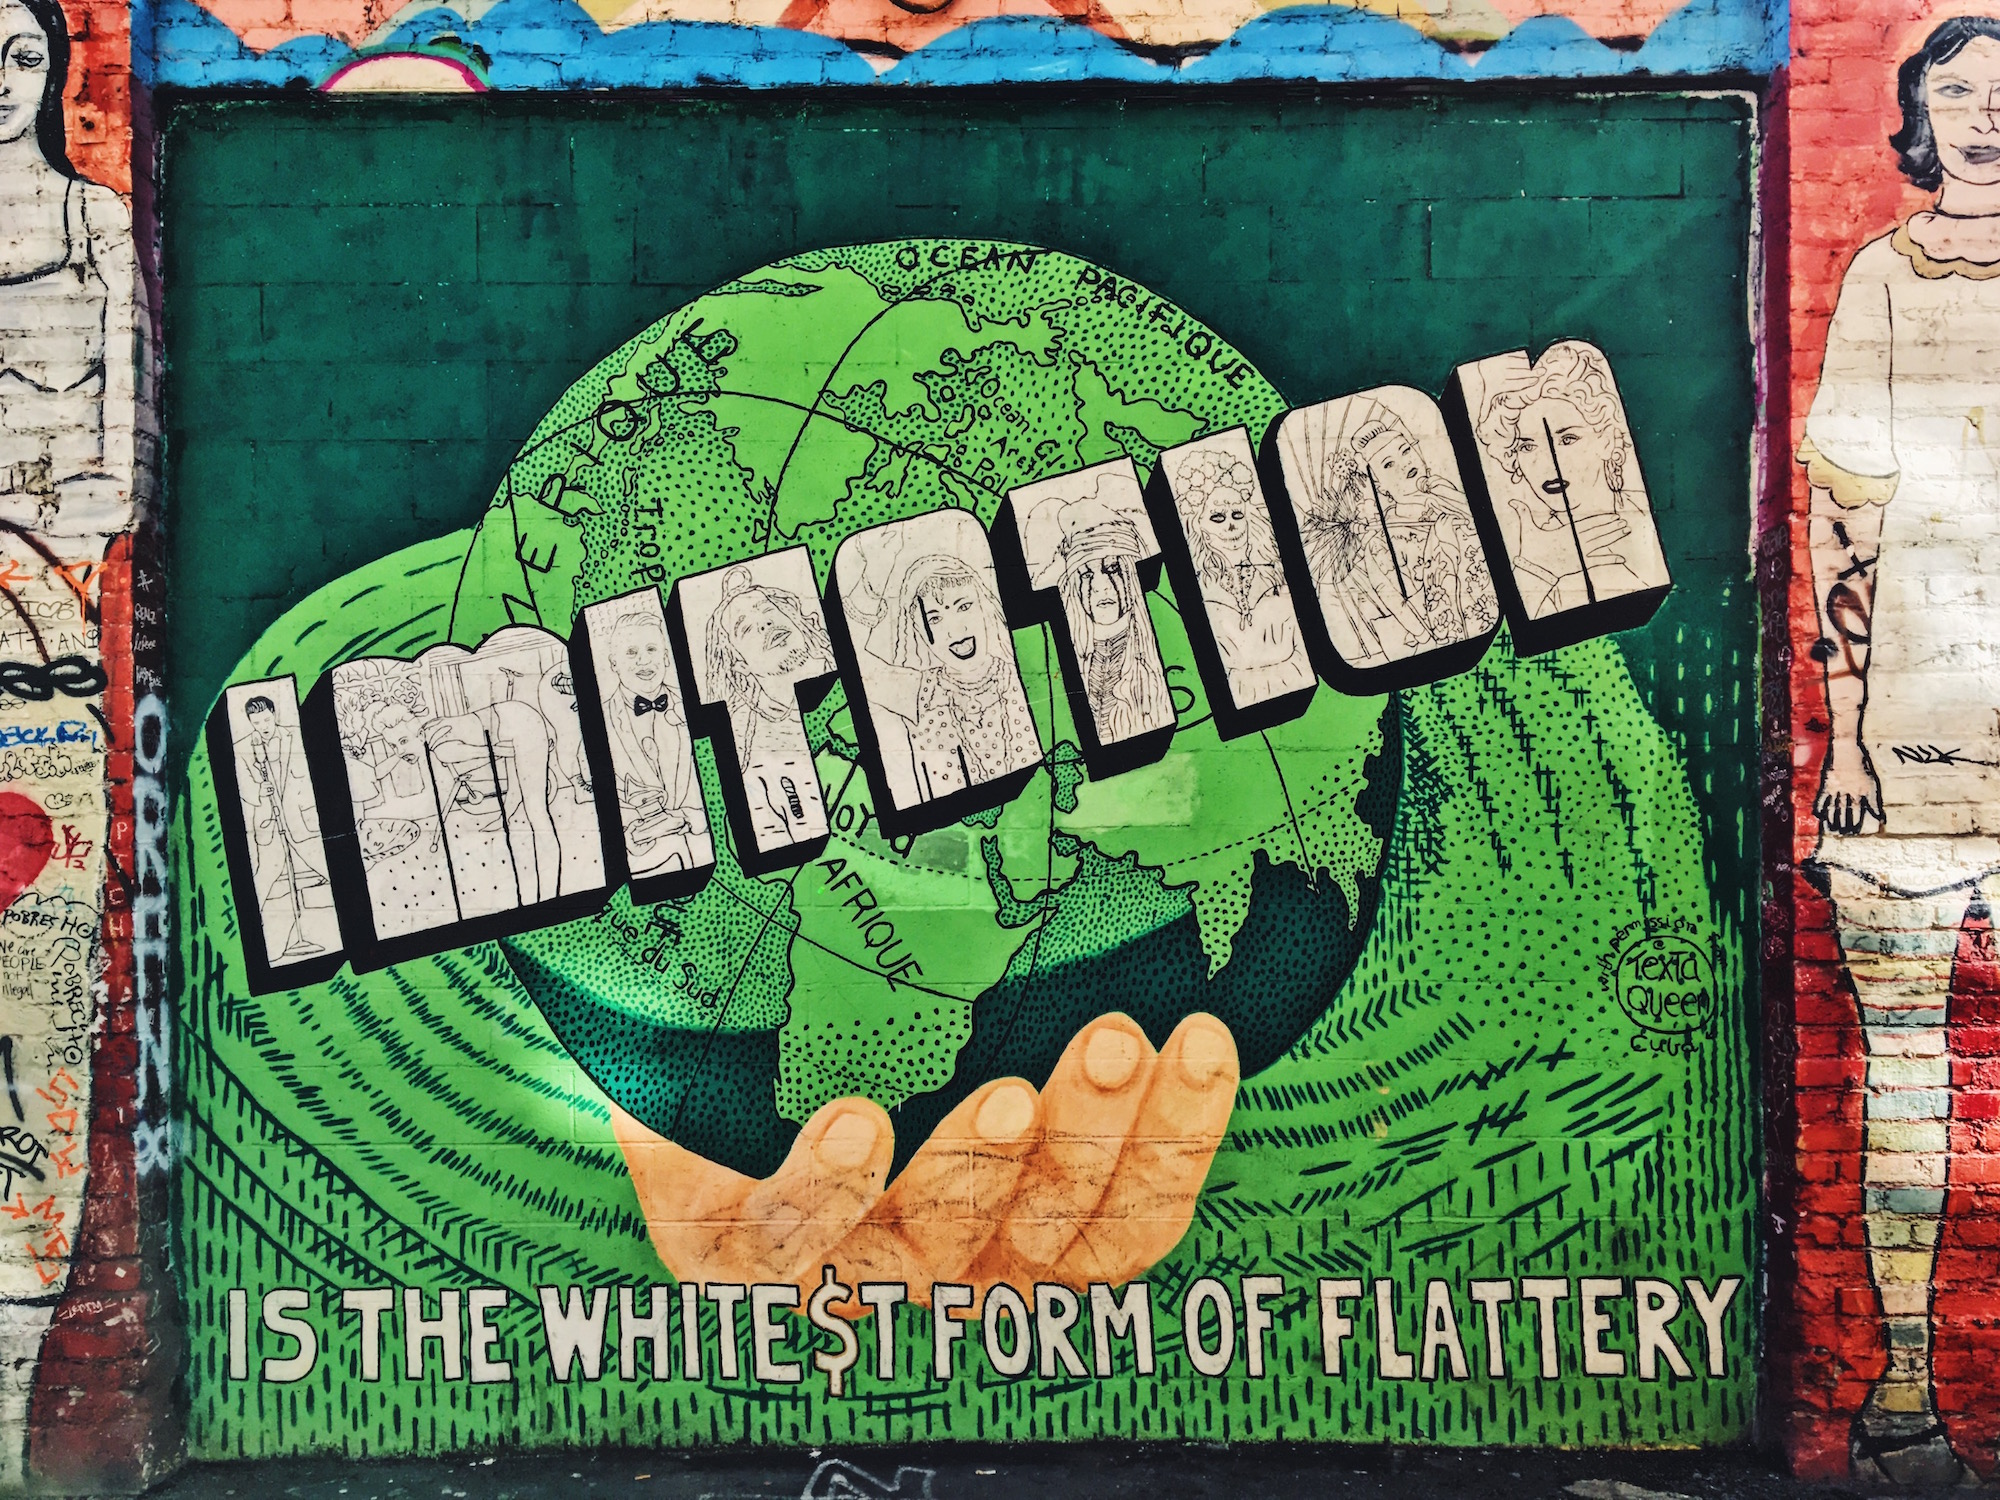 Clarion Alley - Murales nel quartiere Mission di San Fracisco - Imitation is the whitest form of flattery